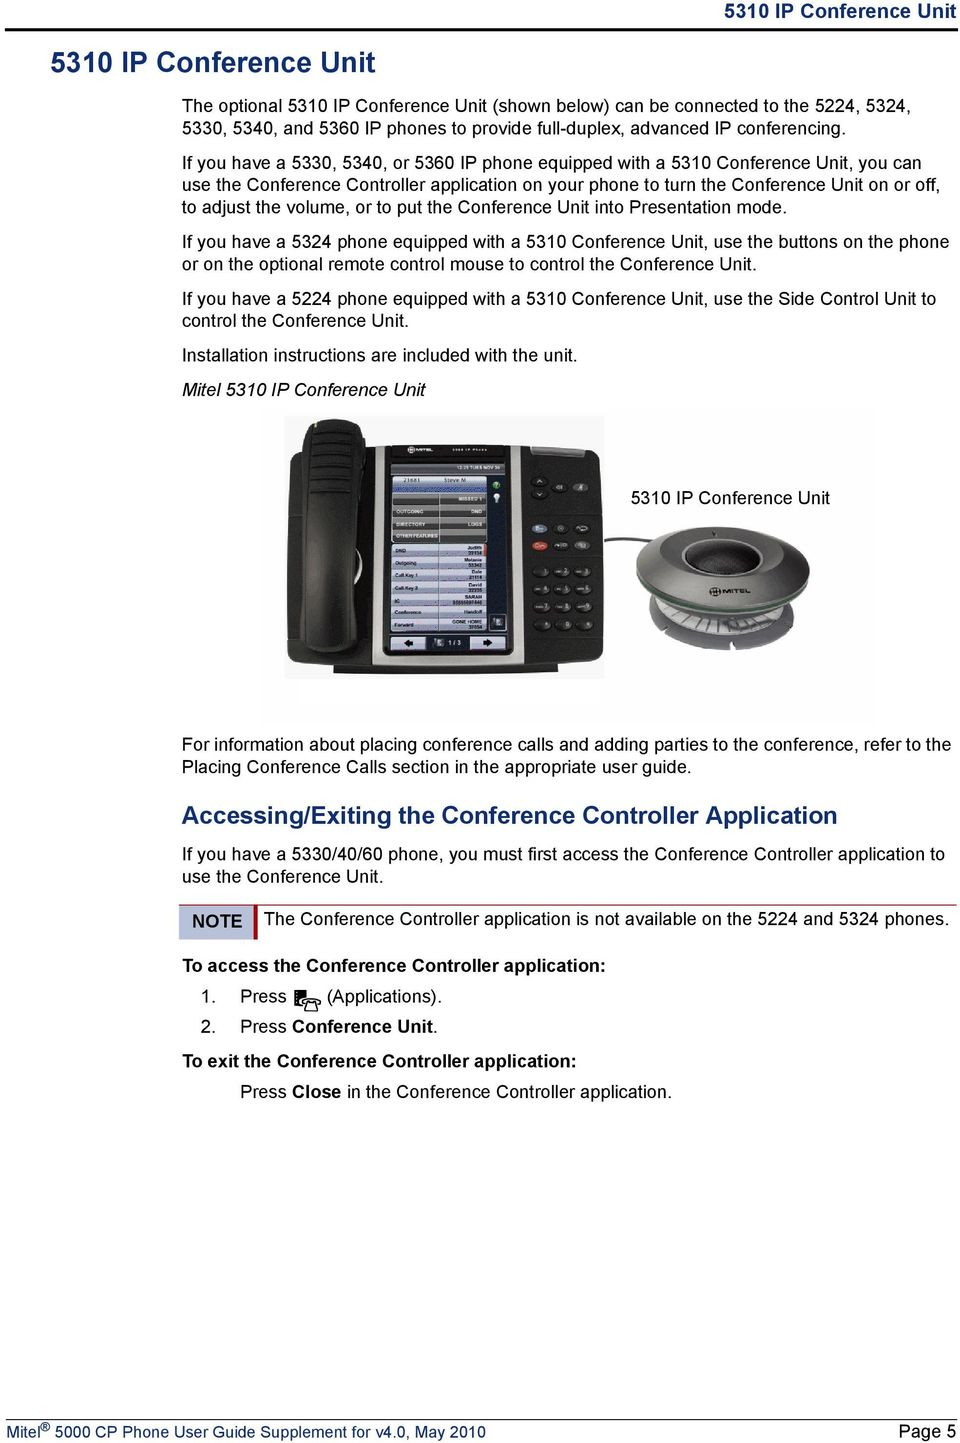 If you have a 5330, 5340, or 5360 IP phone equipped with a 5310 Conference Unit, you can use the Conference Controller application on your phone to turn the Conference Unit on or off, to adjust the